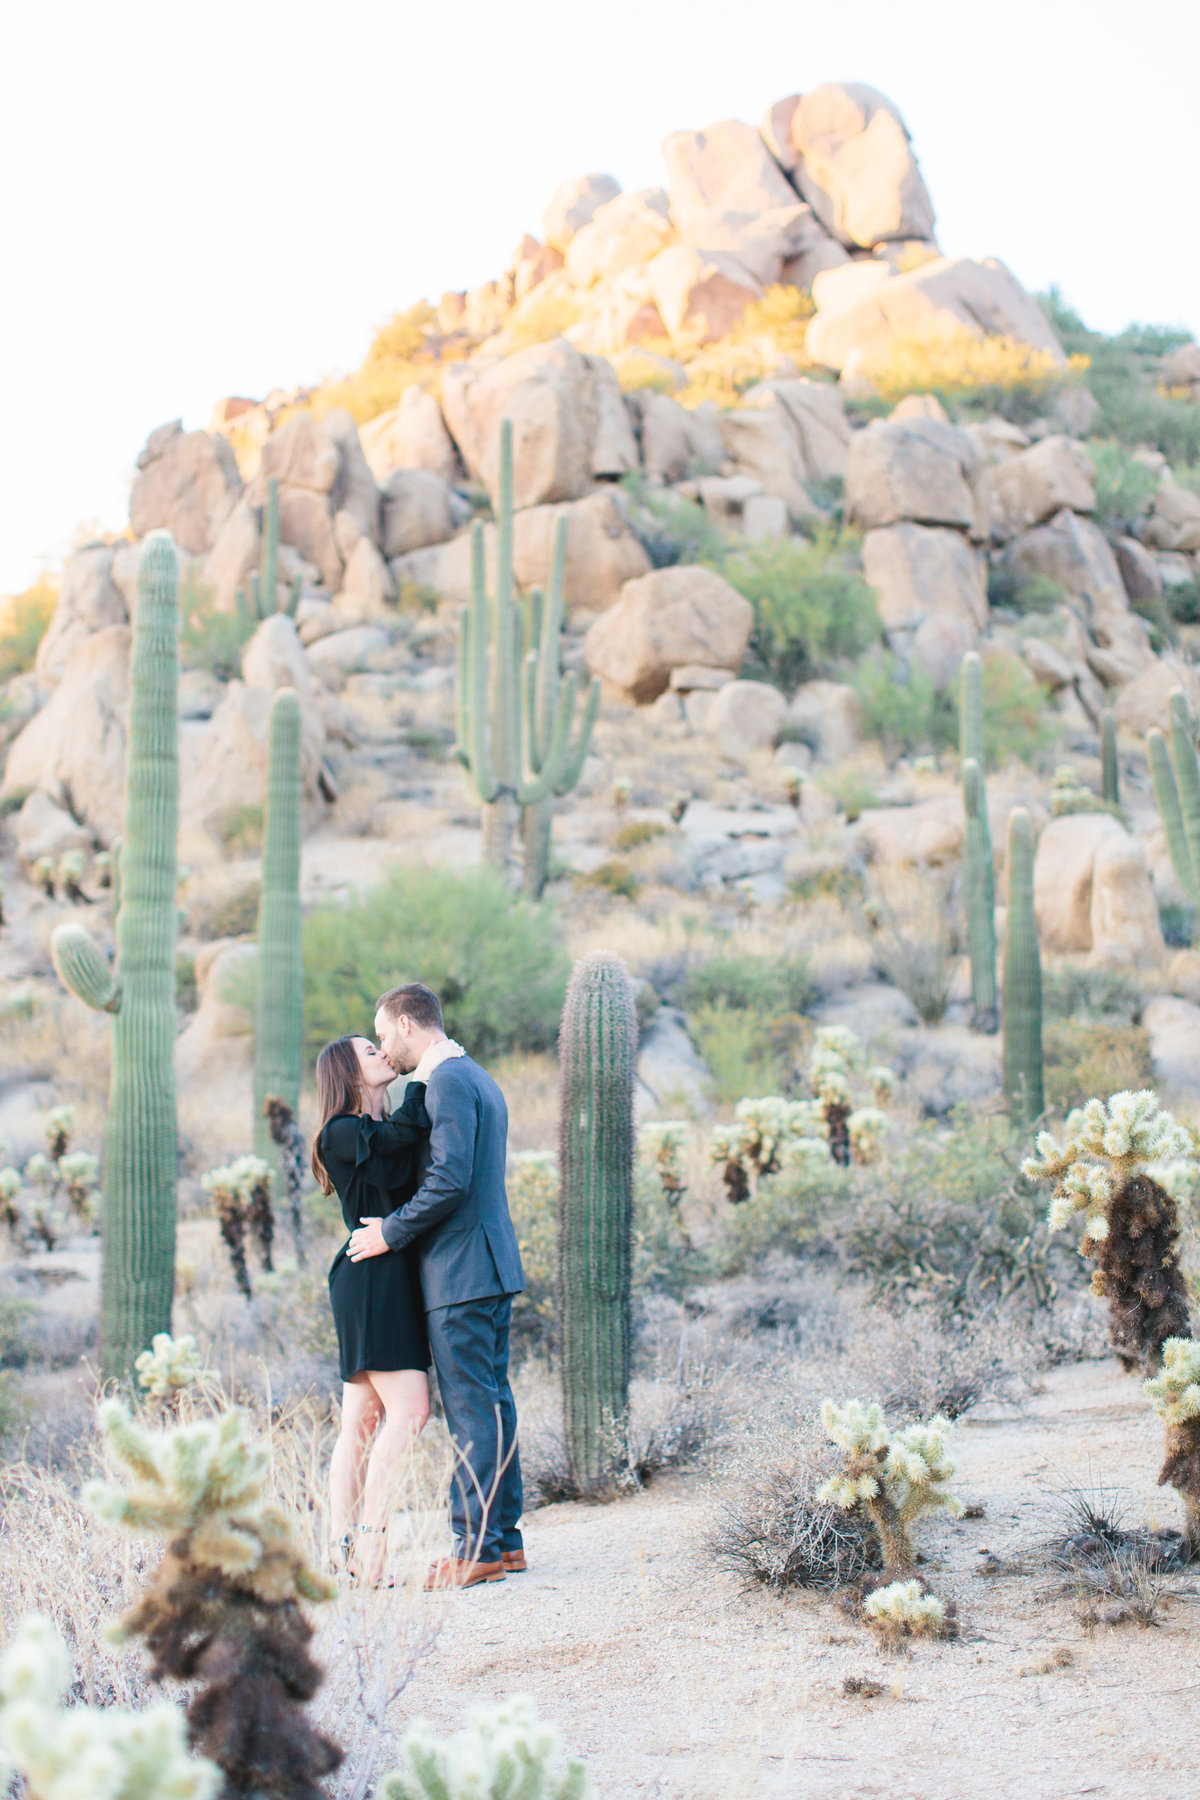 SellersEngagementWEBSITE-8